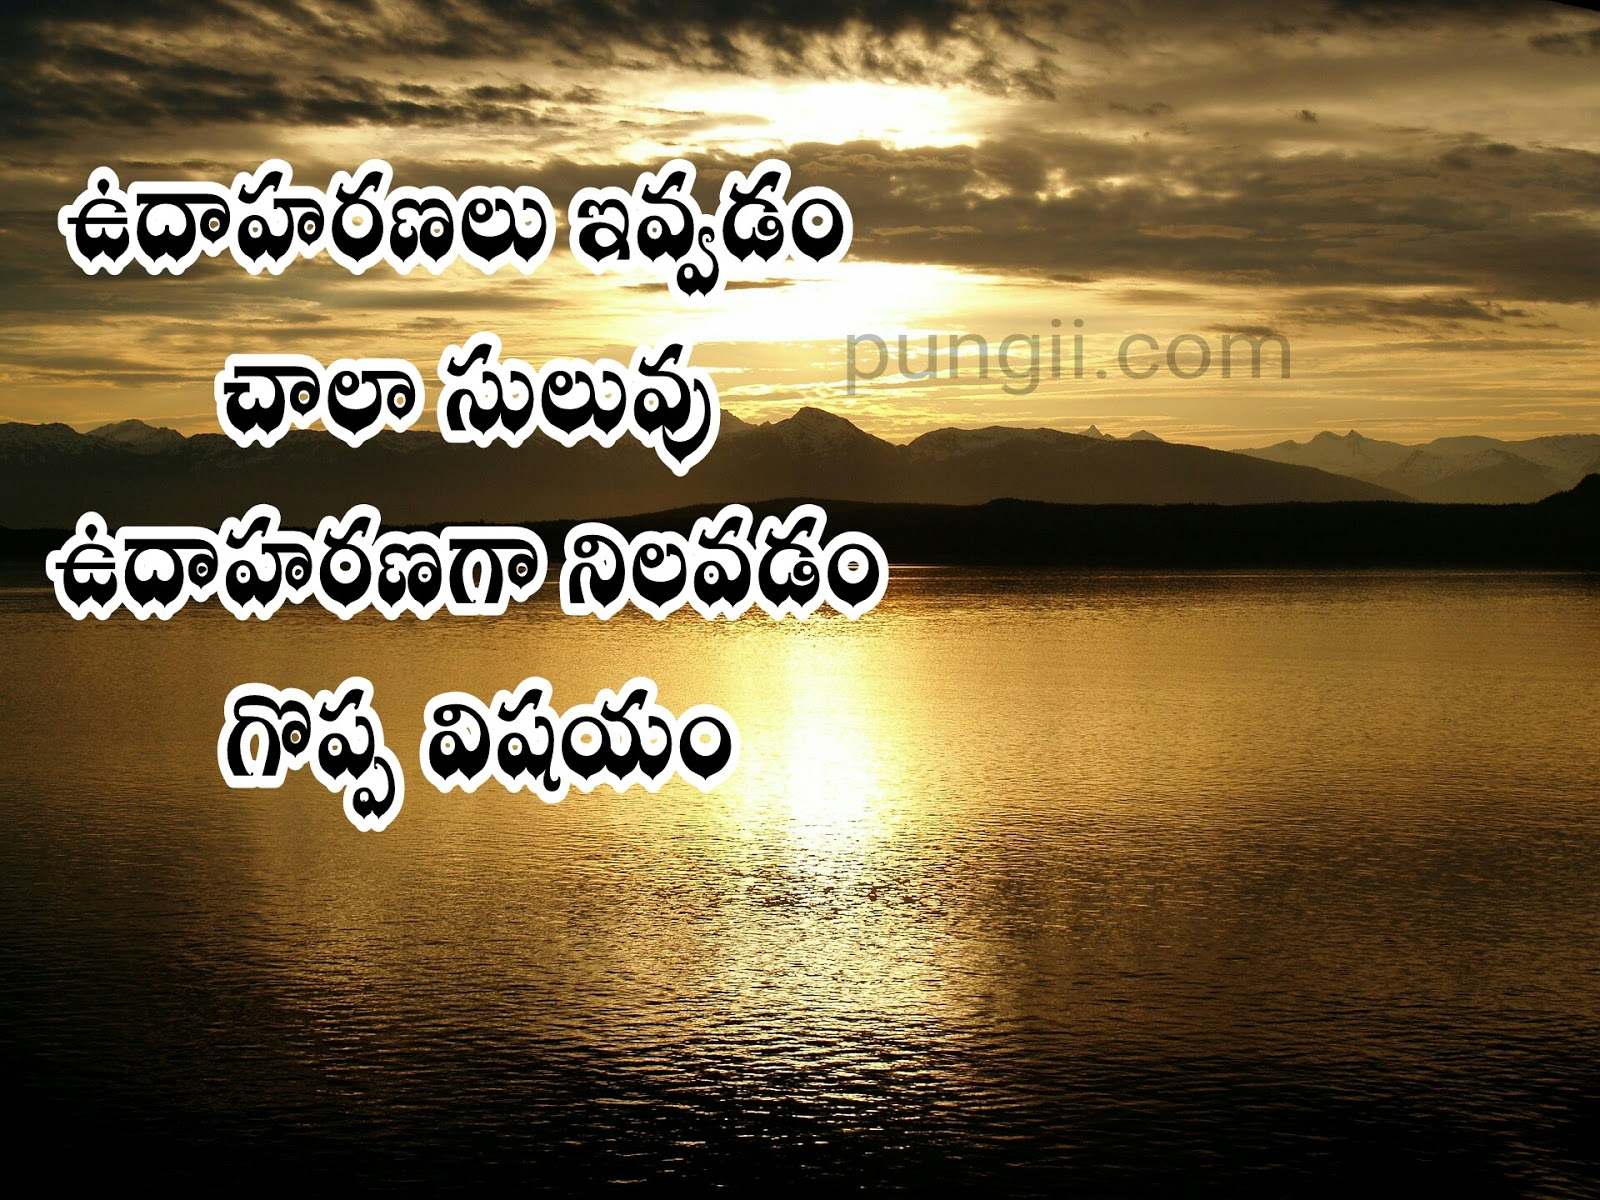 Morning Inspirational Quote Telugu Inspirational Good Morning Quotes Wallpapers  Pungii